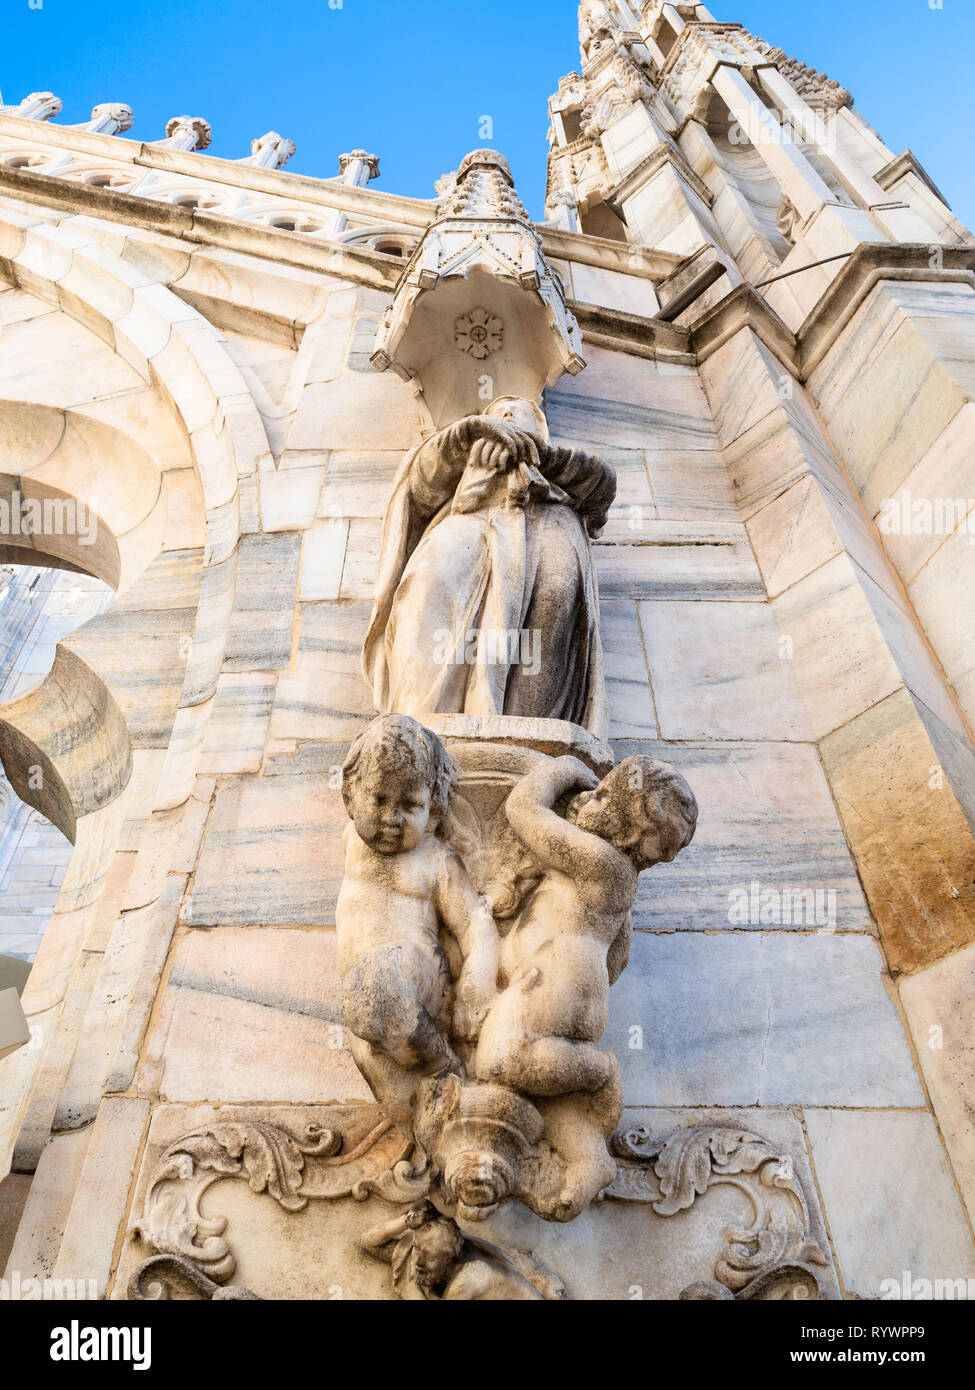 MILAN, ITALY - FEBRUARY 24, 2019: decorative figures on roof of Milan Cathedral (Duomo di Milano) in Milan in morning. This Basilica is the largest ch - Stock Image